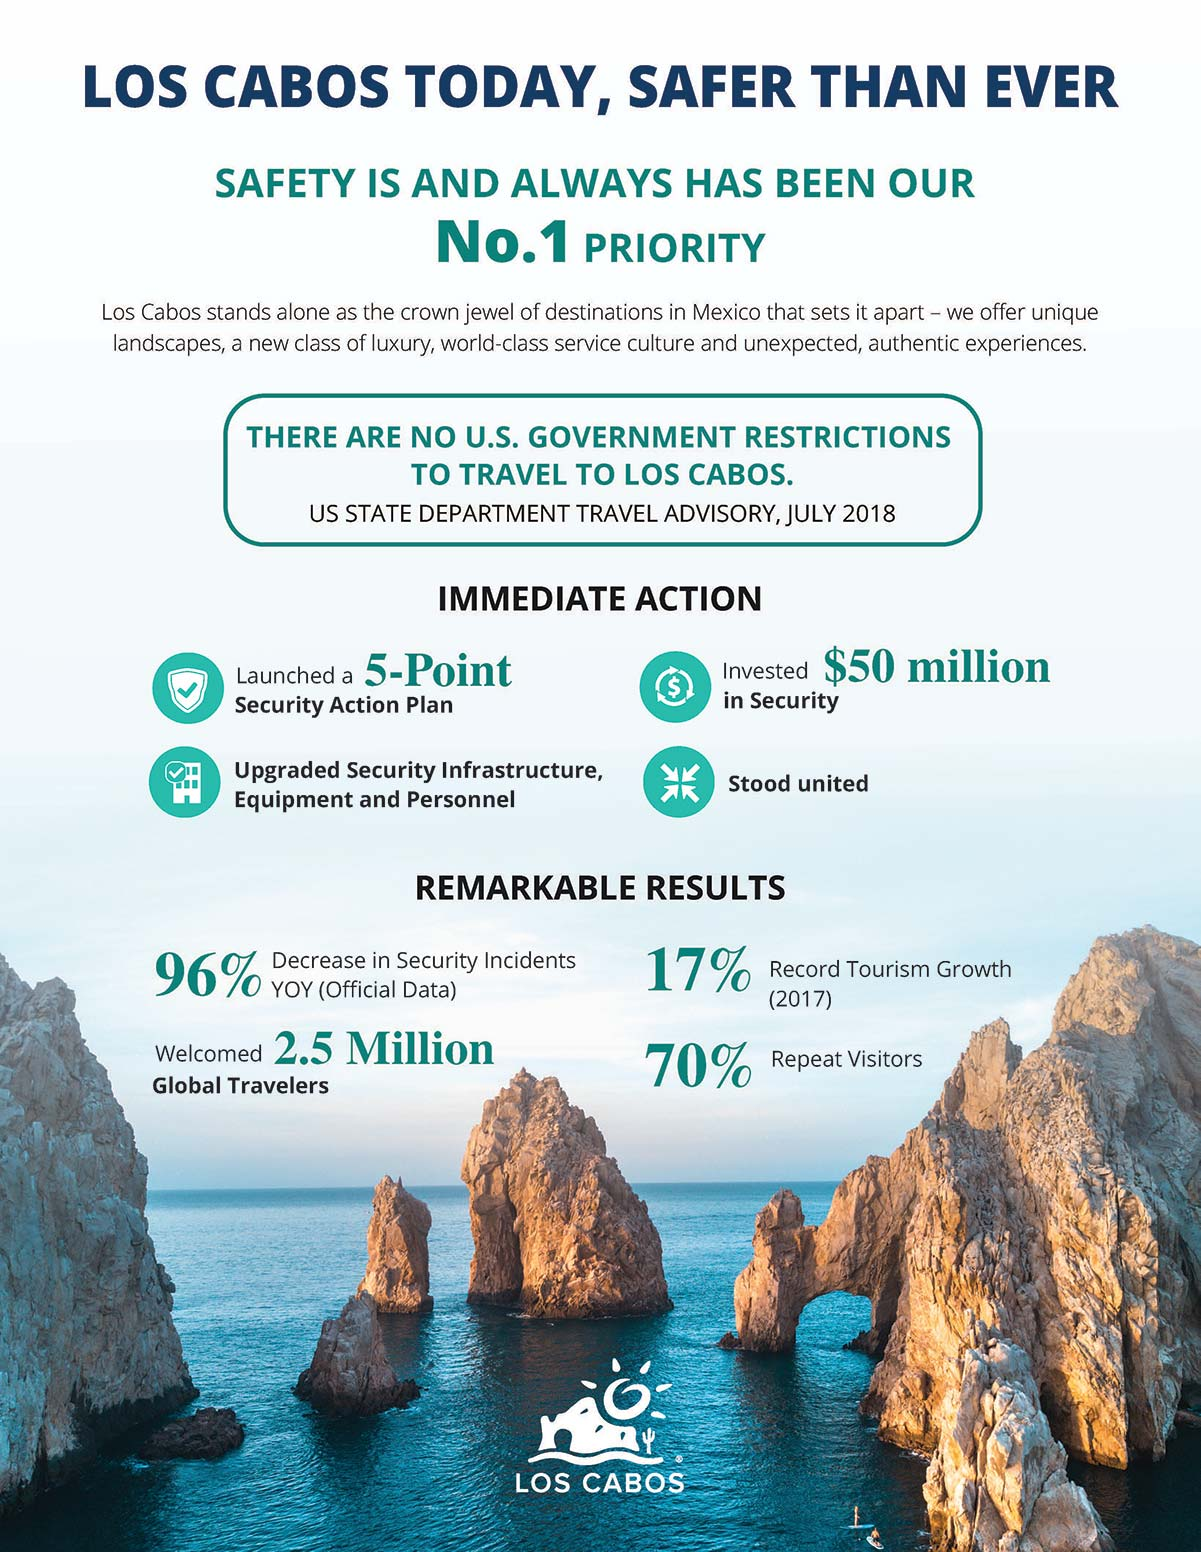 Los Cabos, safer than ever